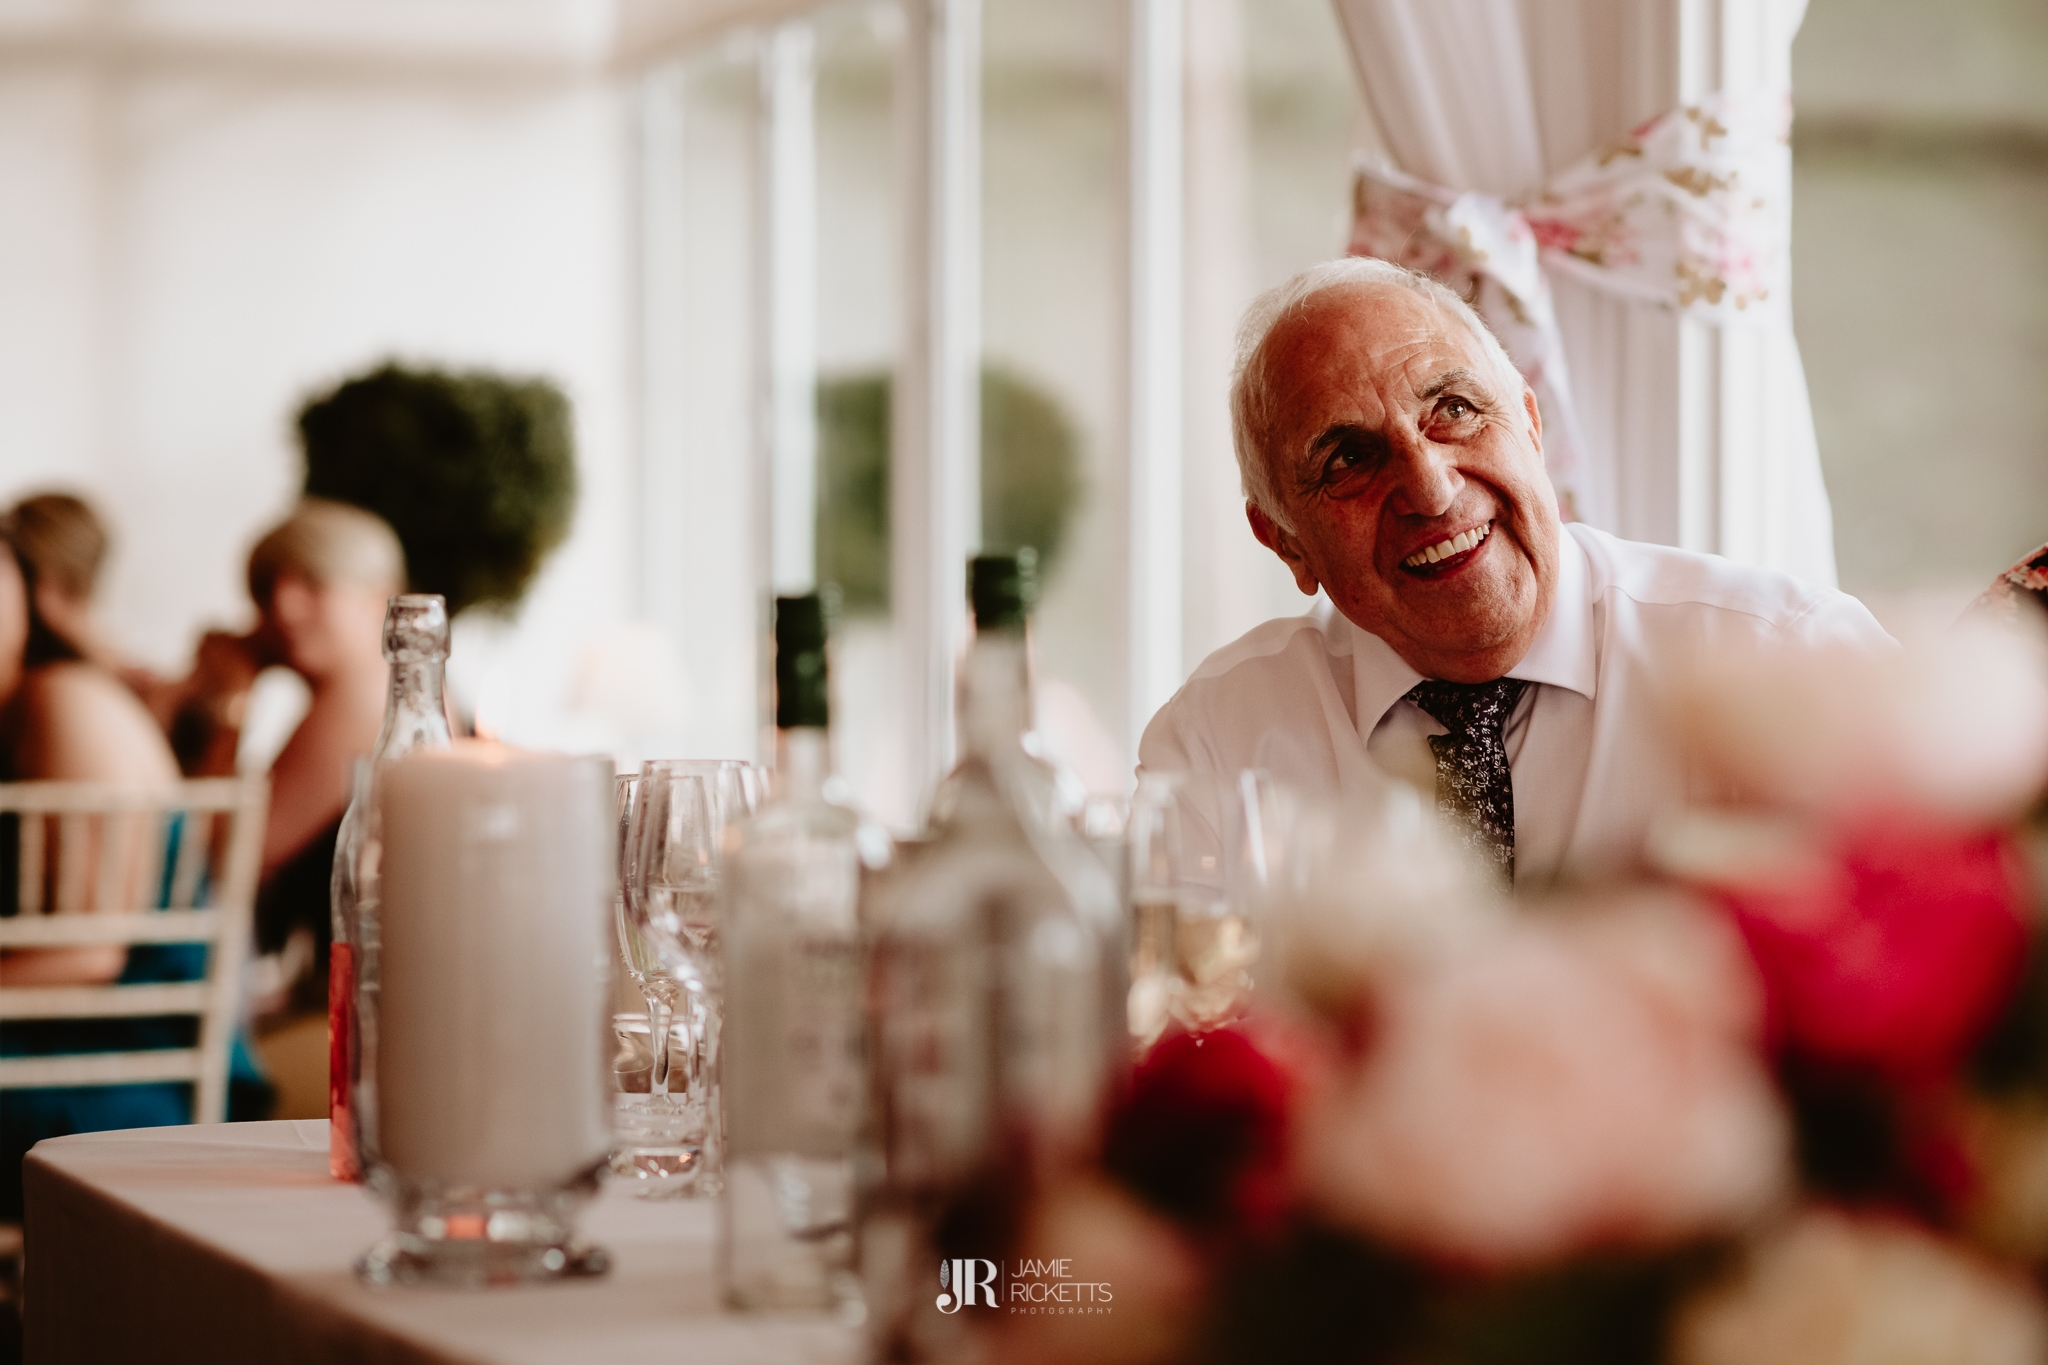 Wroxeter-Hotel-Wedding-Photography-In-Shropshire-By-Shropshire-Wedding-Photographer-Jamie-Ricketts-167.JPG